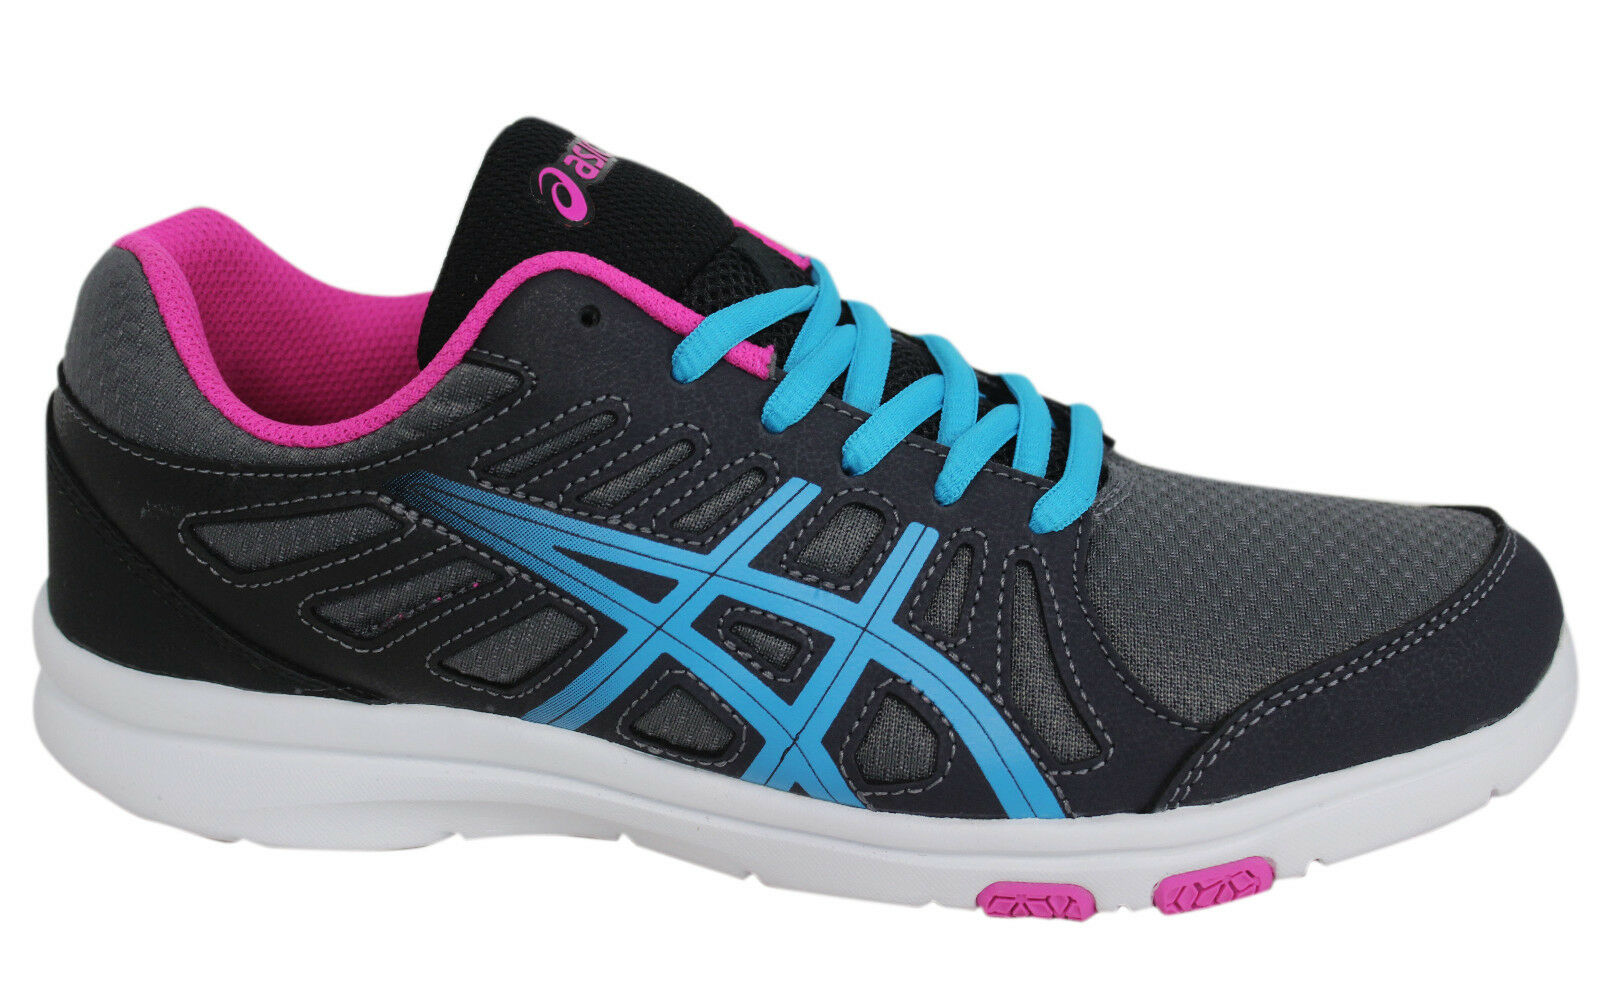 Asics AYAMi Shine Lace Up Black Grey Synthetic Womens Trainers S394Q 9743 D17 Seasonal clearance sale